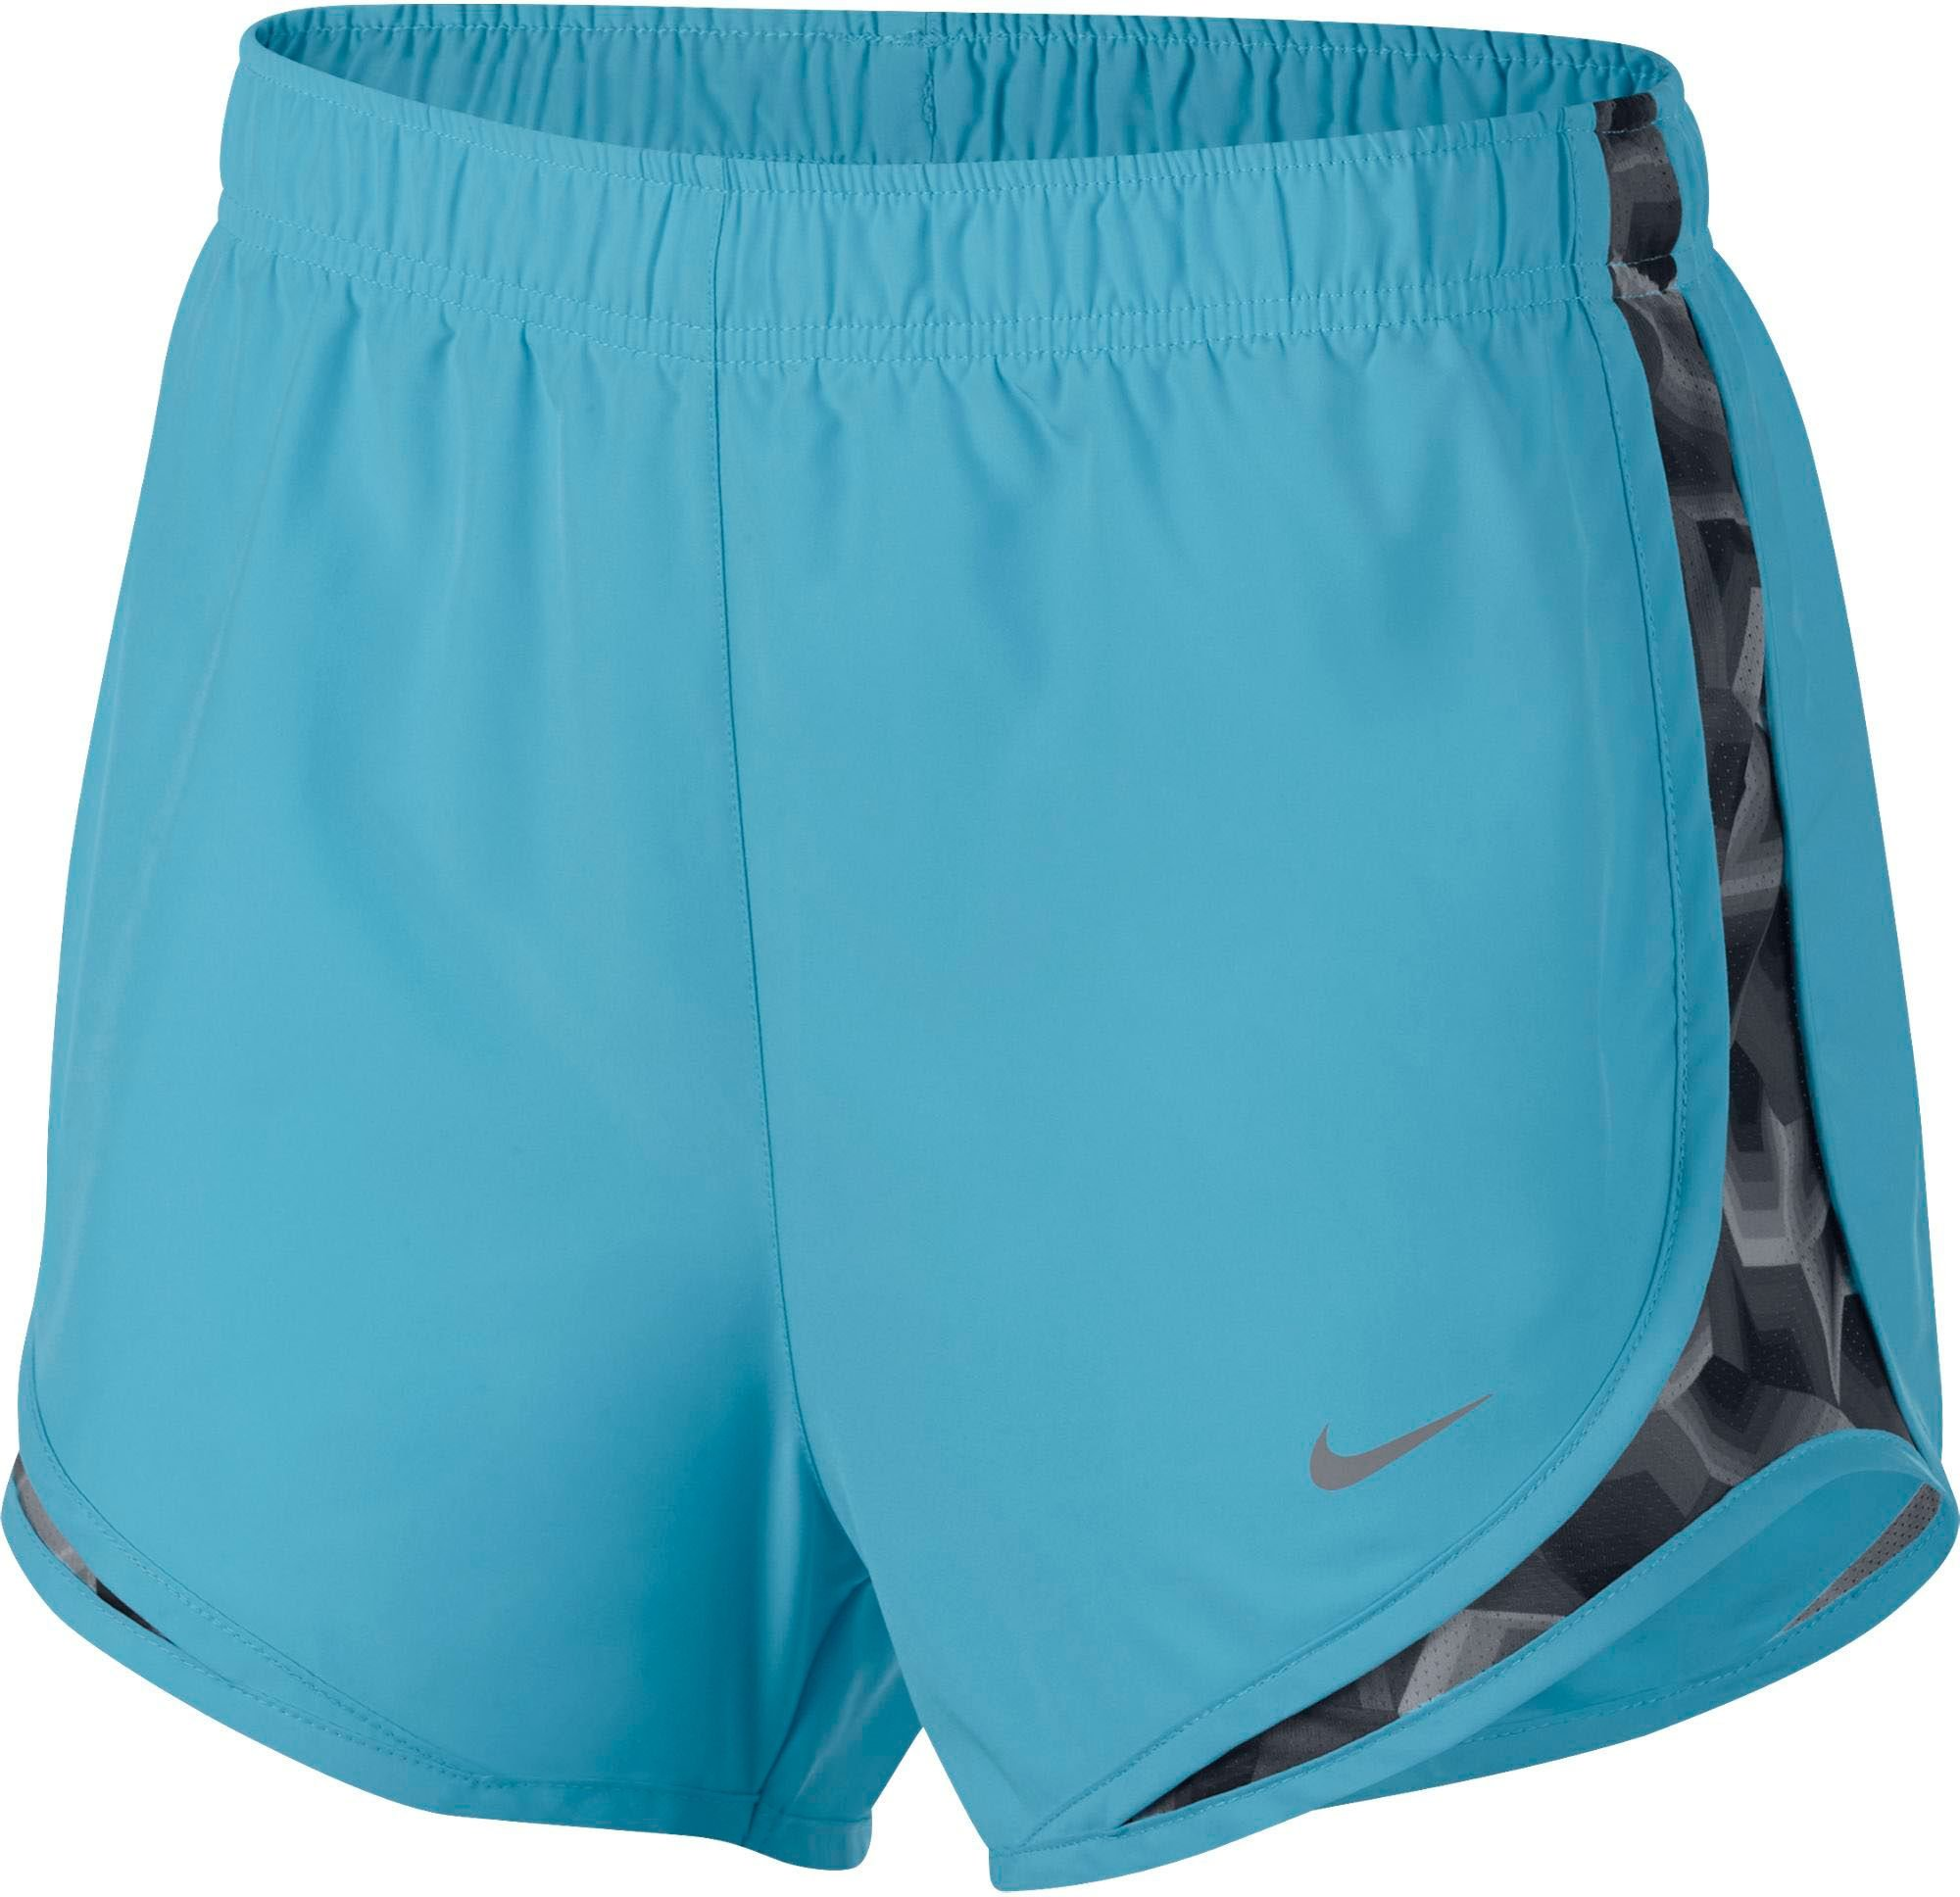 Nike Women's 3'' Dry Tempo Running Shorts(Polarized Blue/Stealth/Wg, M) by Nike (Image #1)